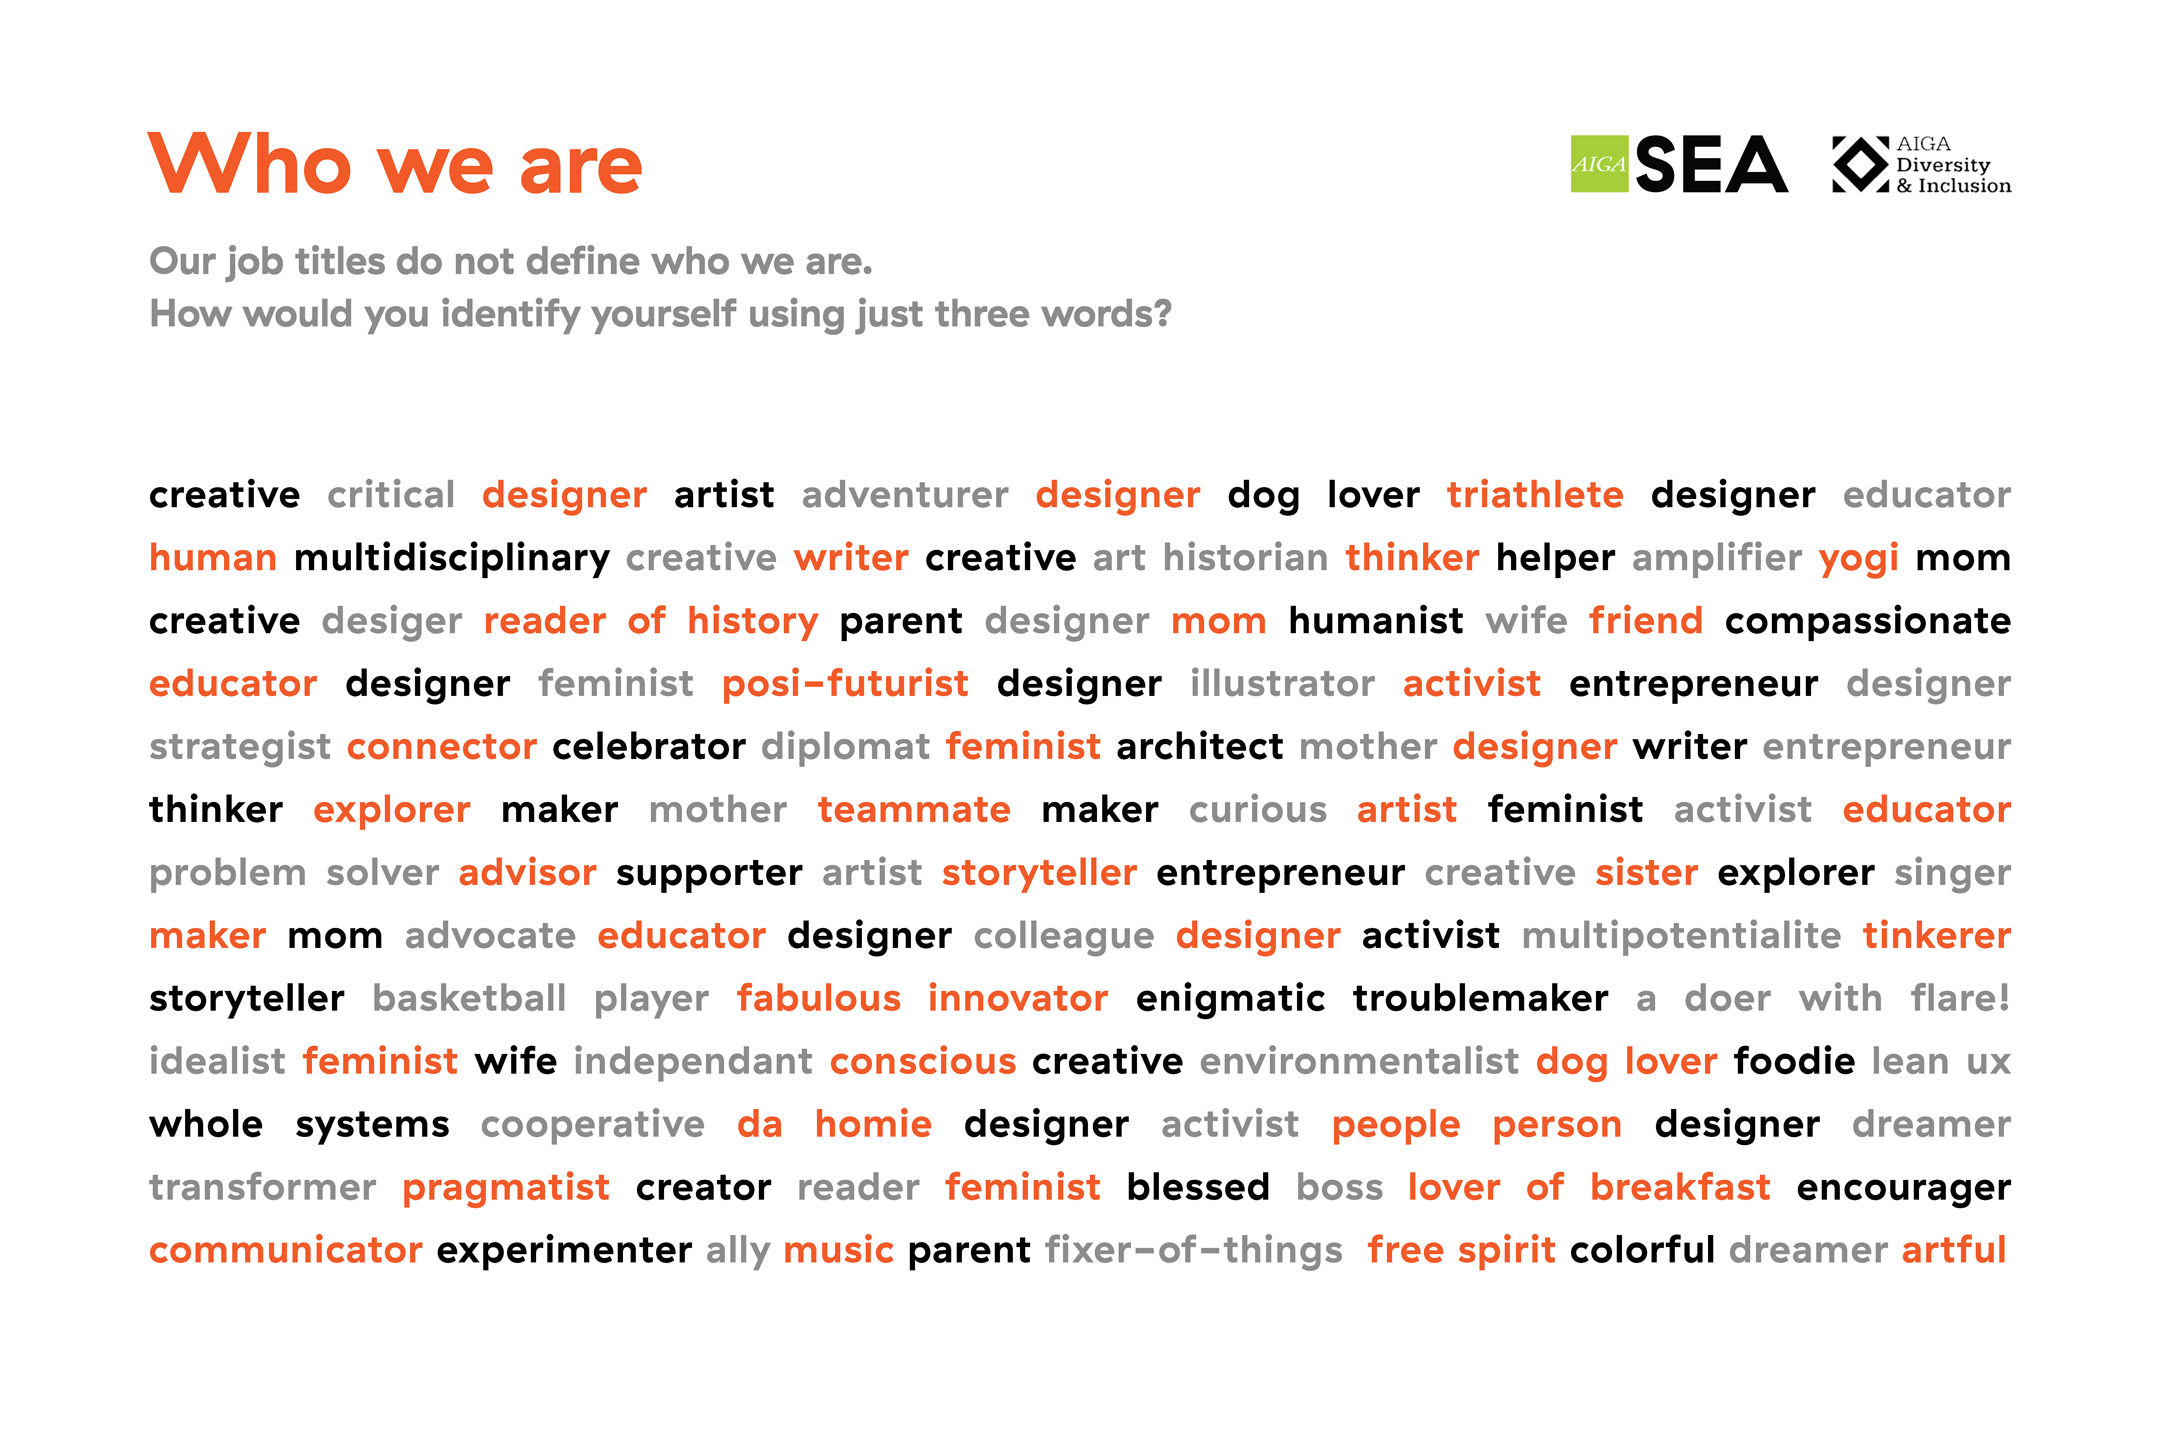 Our job title do not define who we are. How would you identify yourself in just 3 words? Answered by an array of creative titles ranging from designer to dreamer